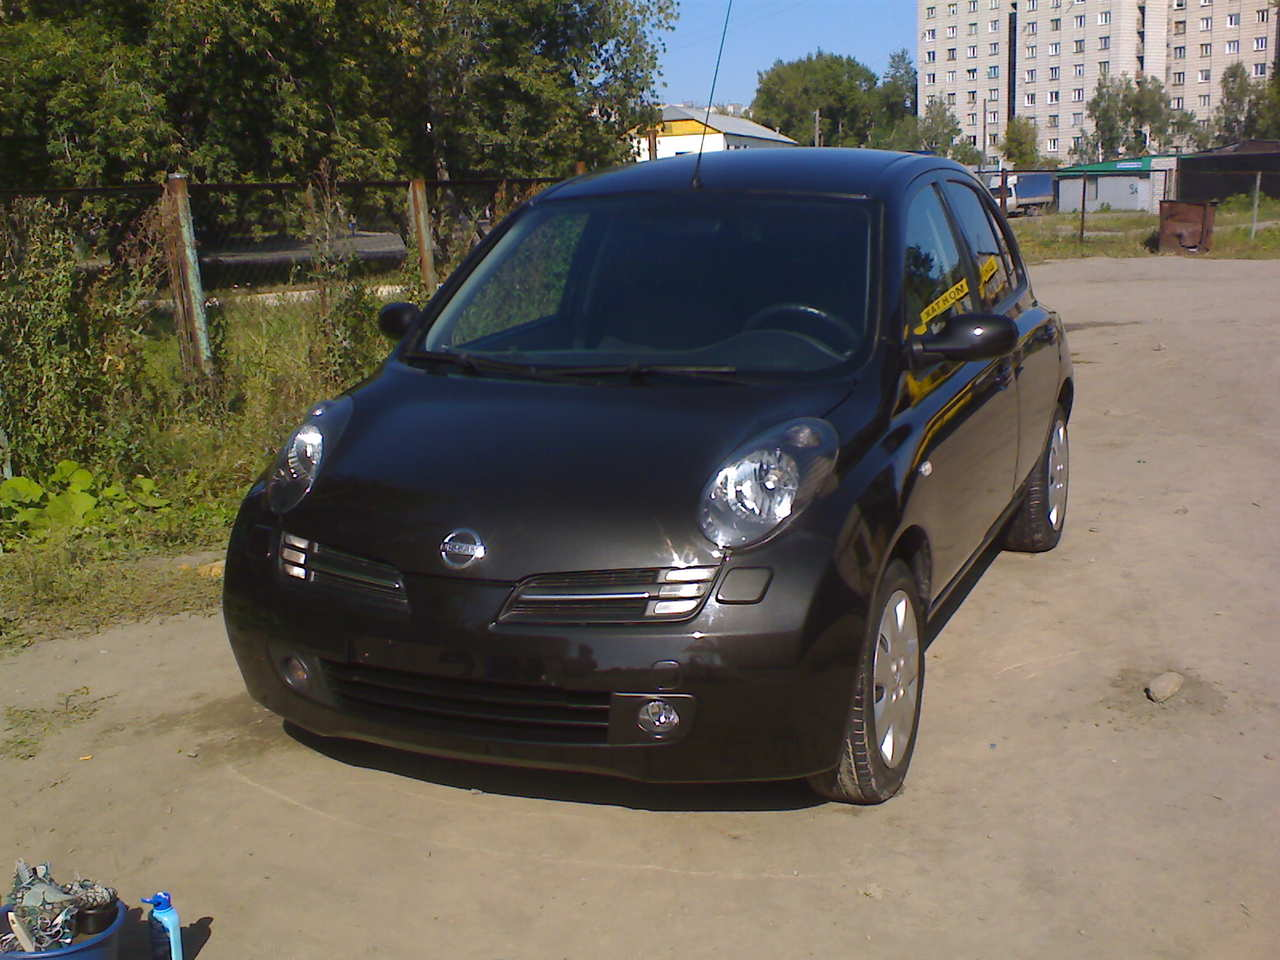 used 2005 nissan micra photos 1240cc gasoline ff automatic for sale. Black Bedroom Furniture Sets. Home Design Ideas